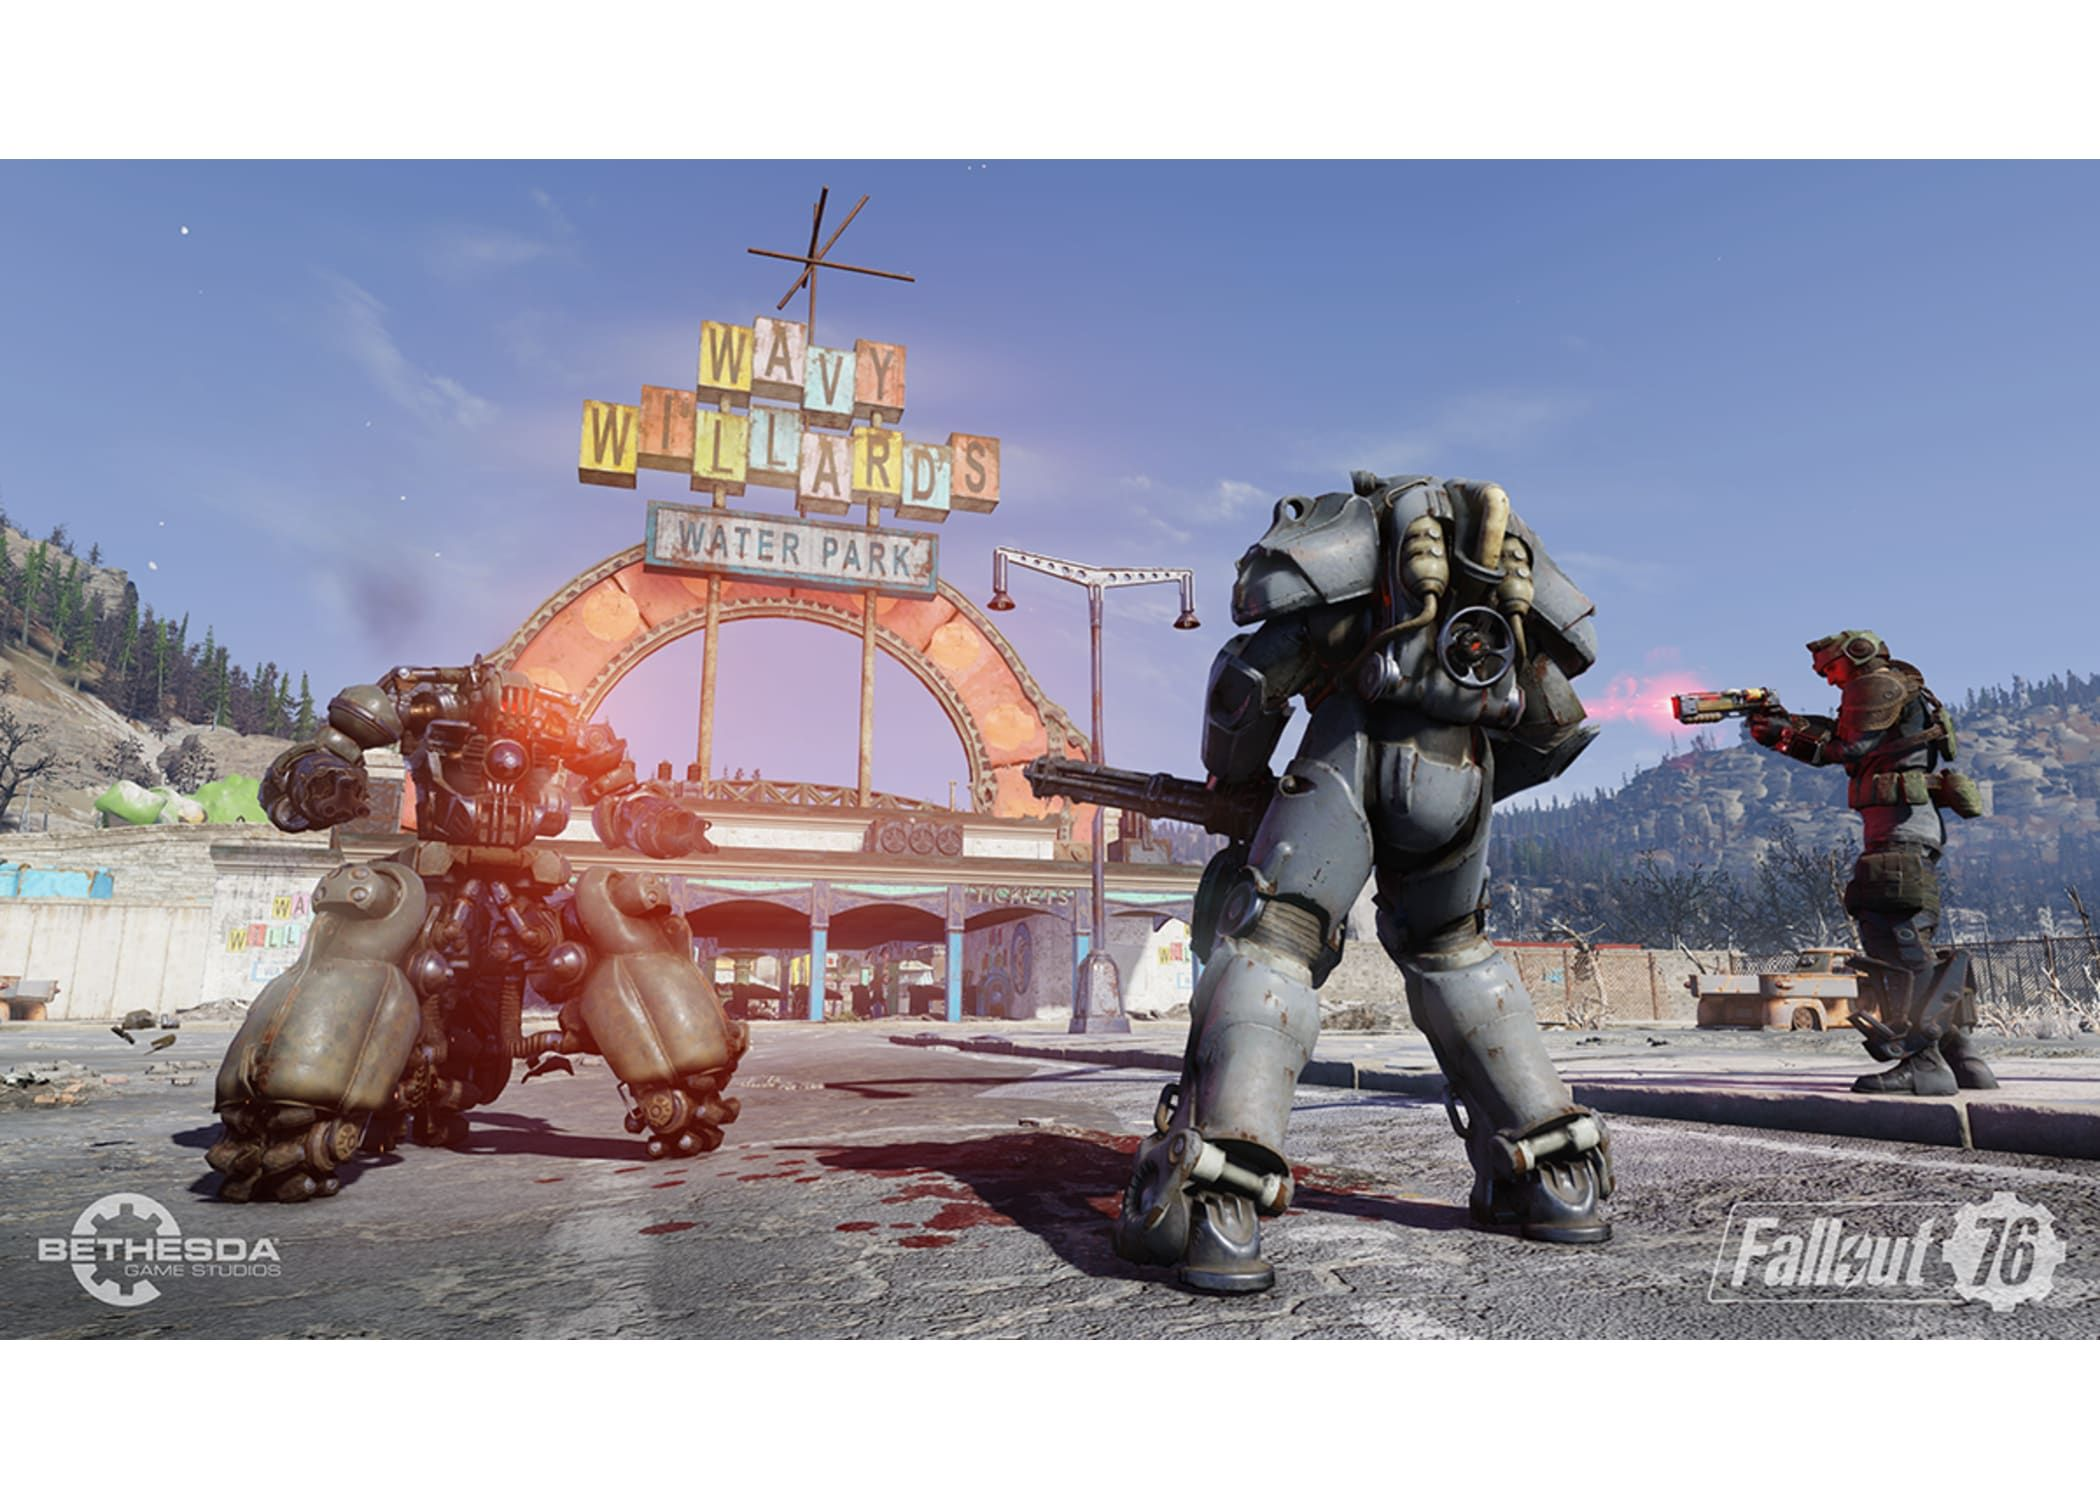 49+ Is fallout 76 on xbox game pass advice